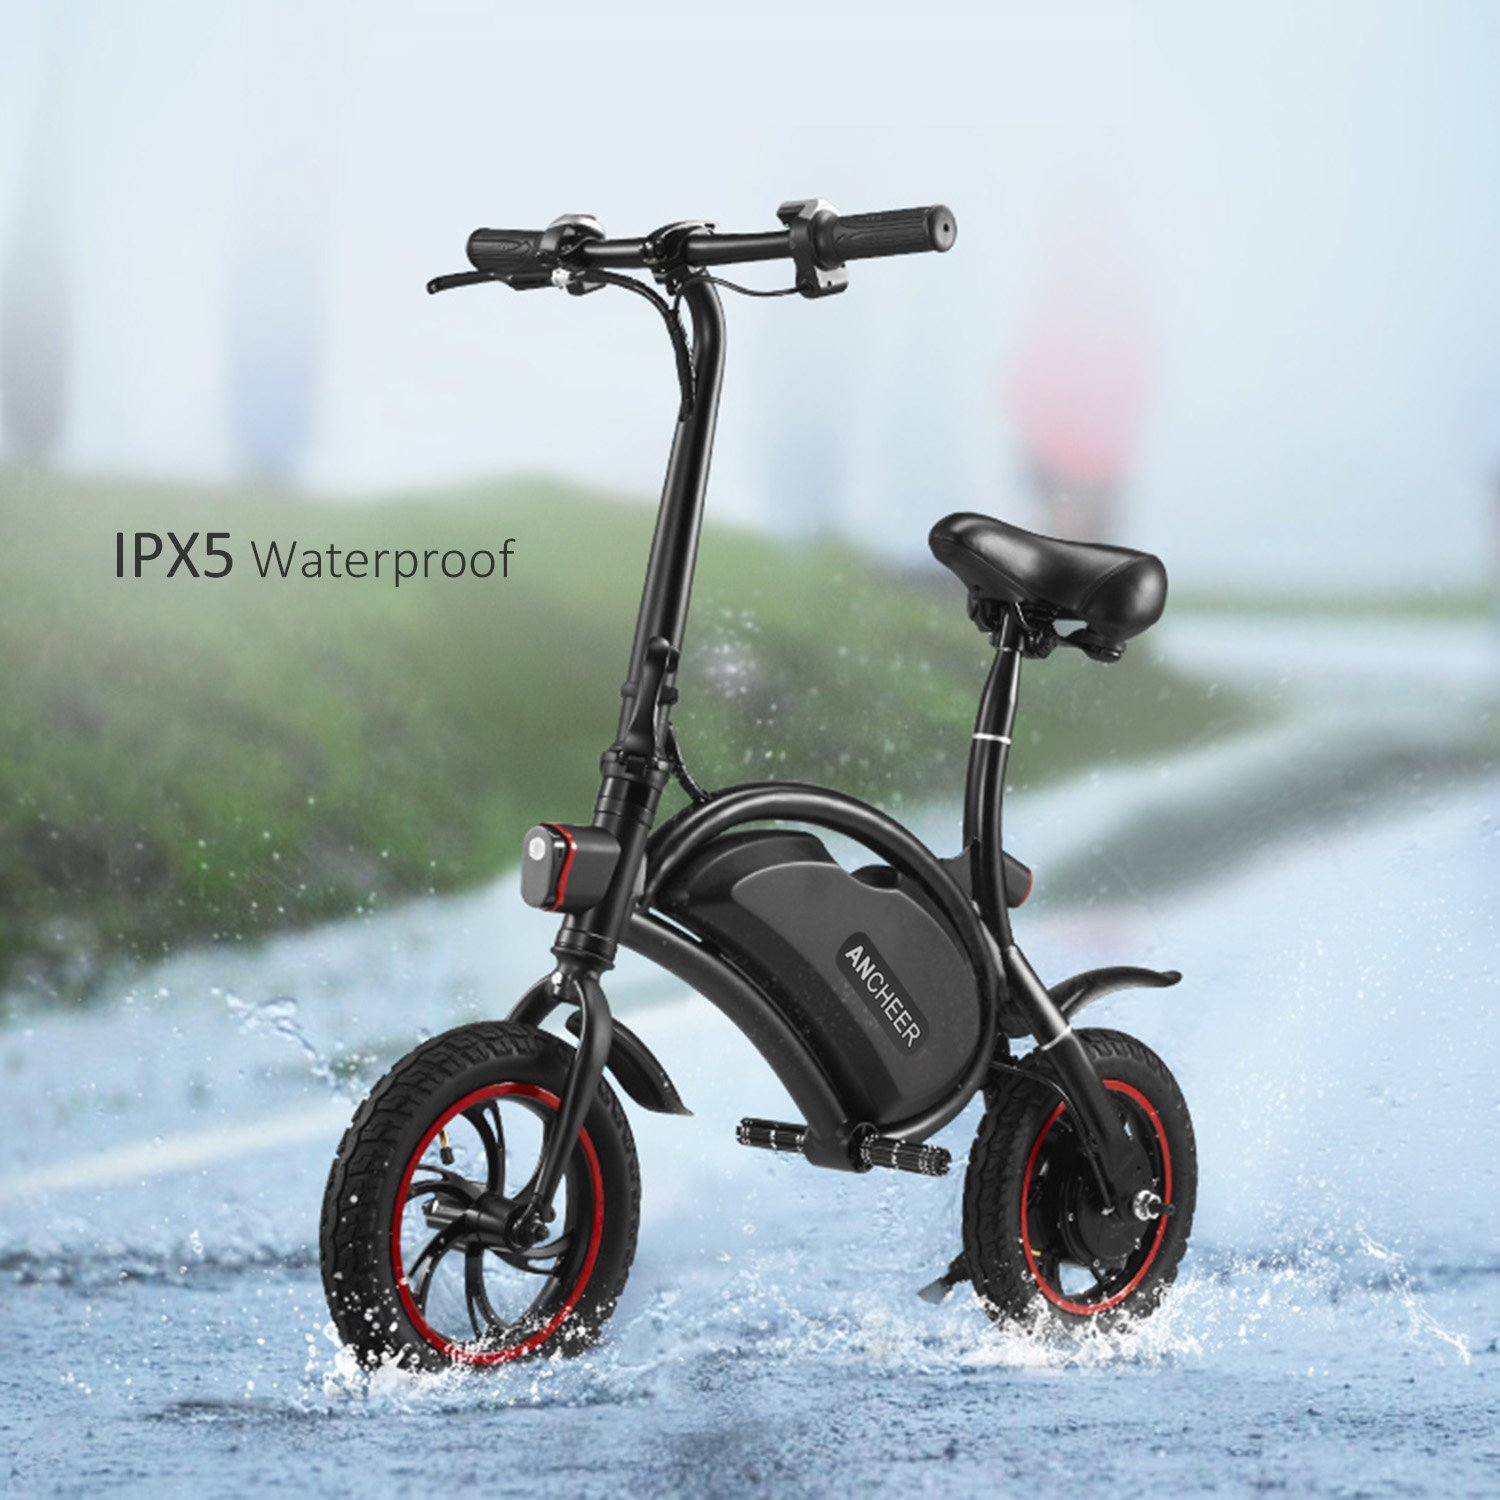 REVIEW ANCHEER Folding Electric Bicycle E-Bike Scooter 350W Powerful Motor Waterproof Ebike with 12 Mile Range, APP Speed Setting | Electric Bike in Seattle WA 71BzTZ73AjL._SL1500_